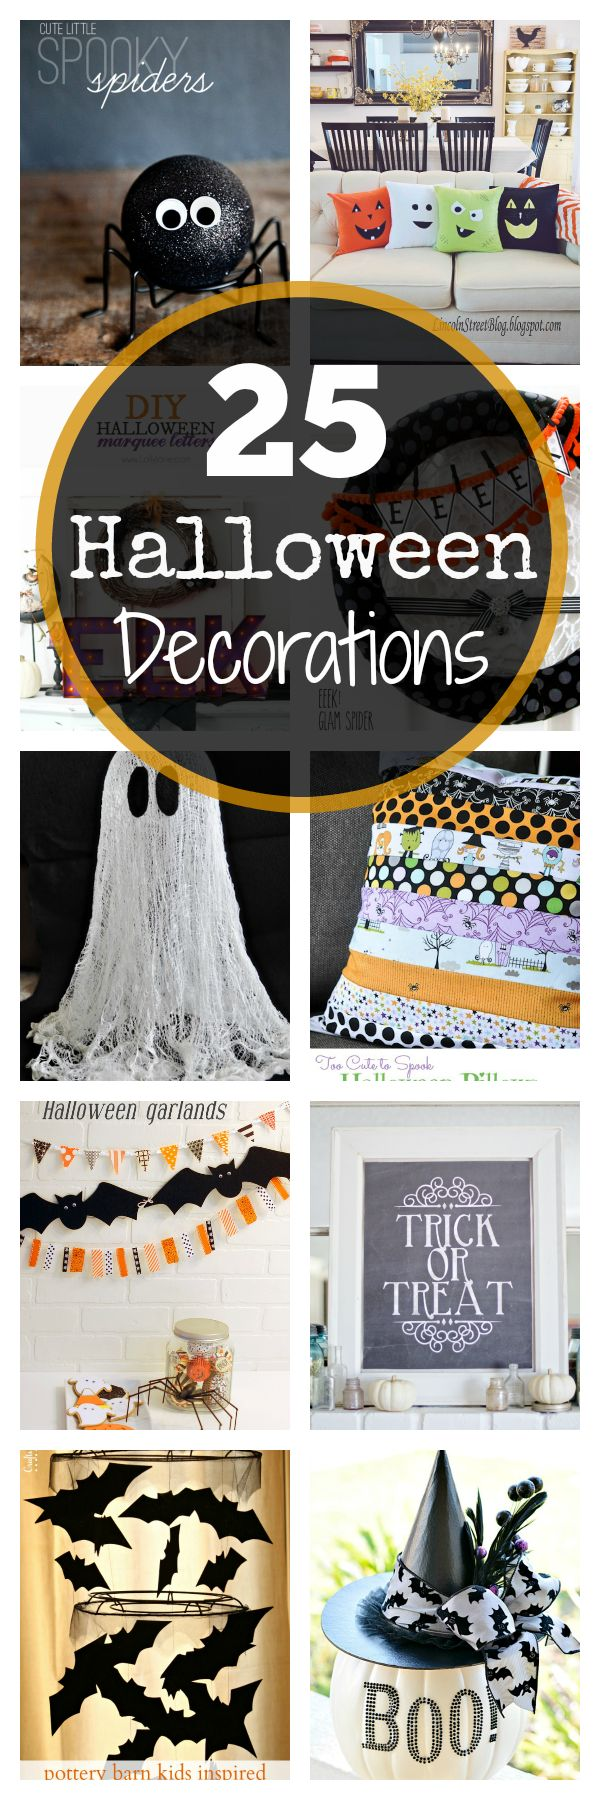 25 Fun Ways to Decorate For Halloween